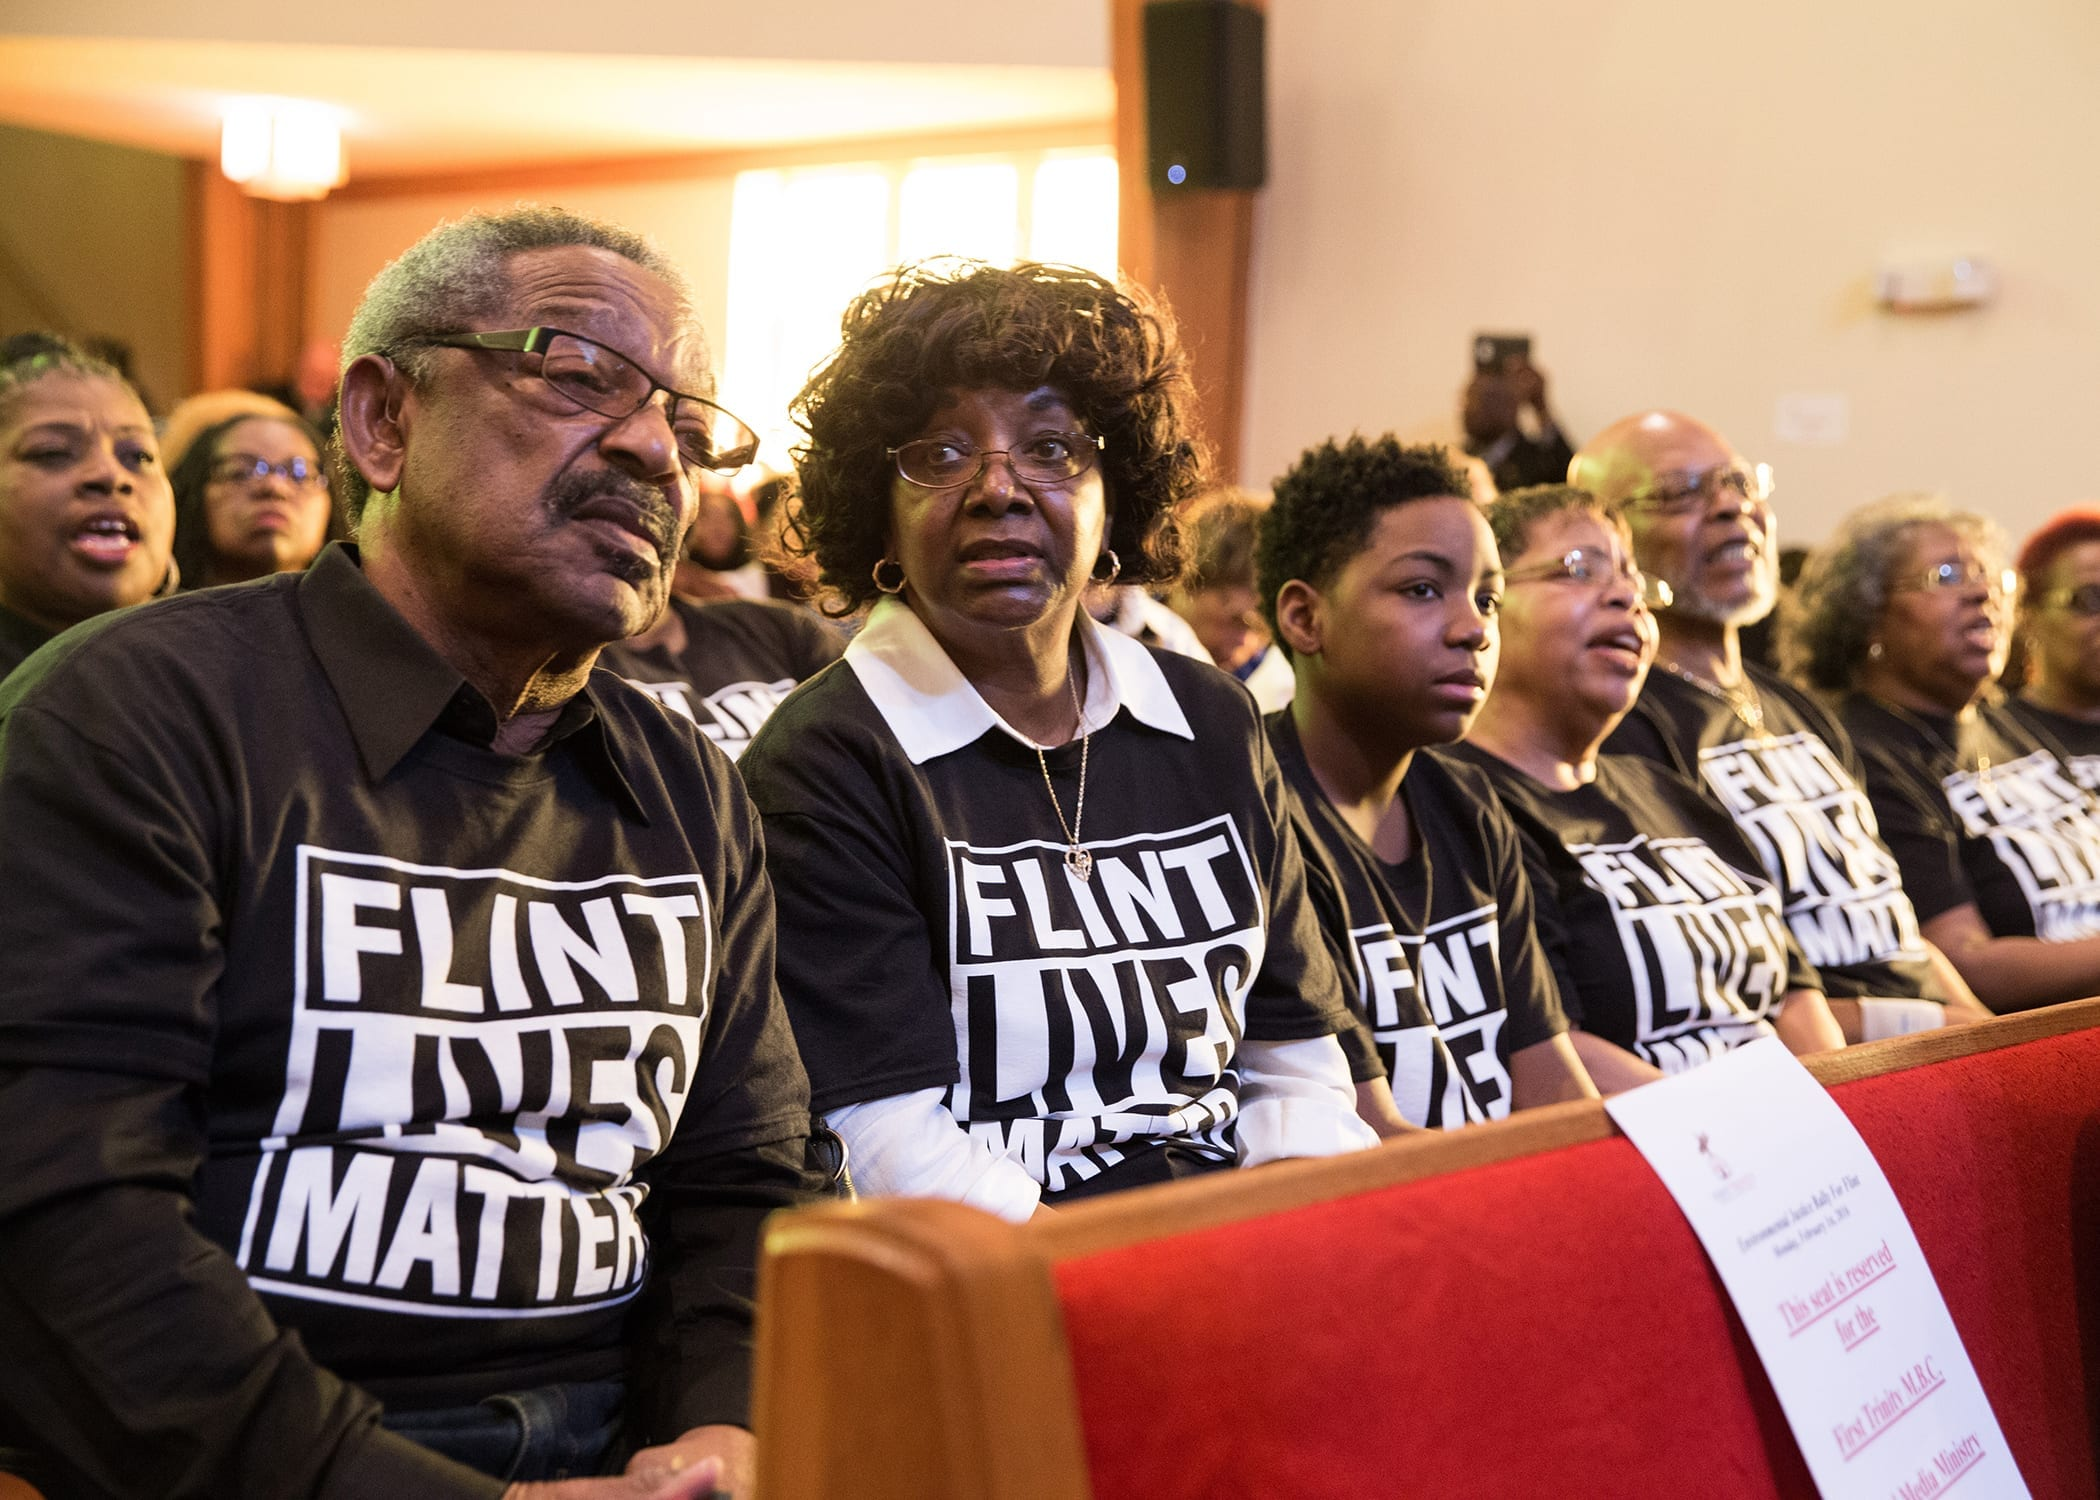 Appeals Court Says Flint Water Lawsuit Can Continue